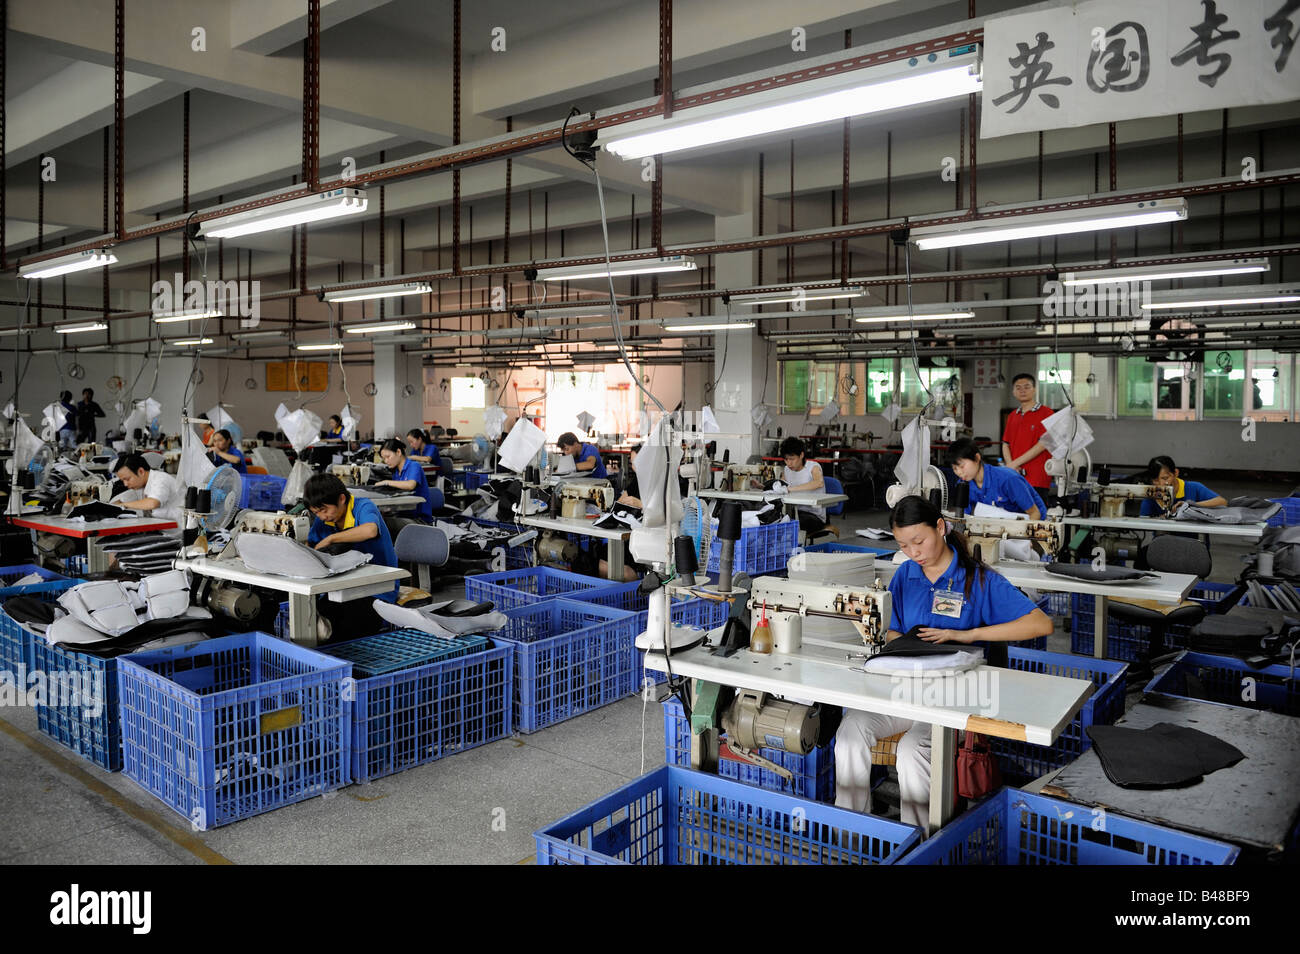 Taiwan Capital Furniture Factory In Huizhou Guangdong China Stock